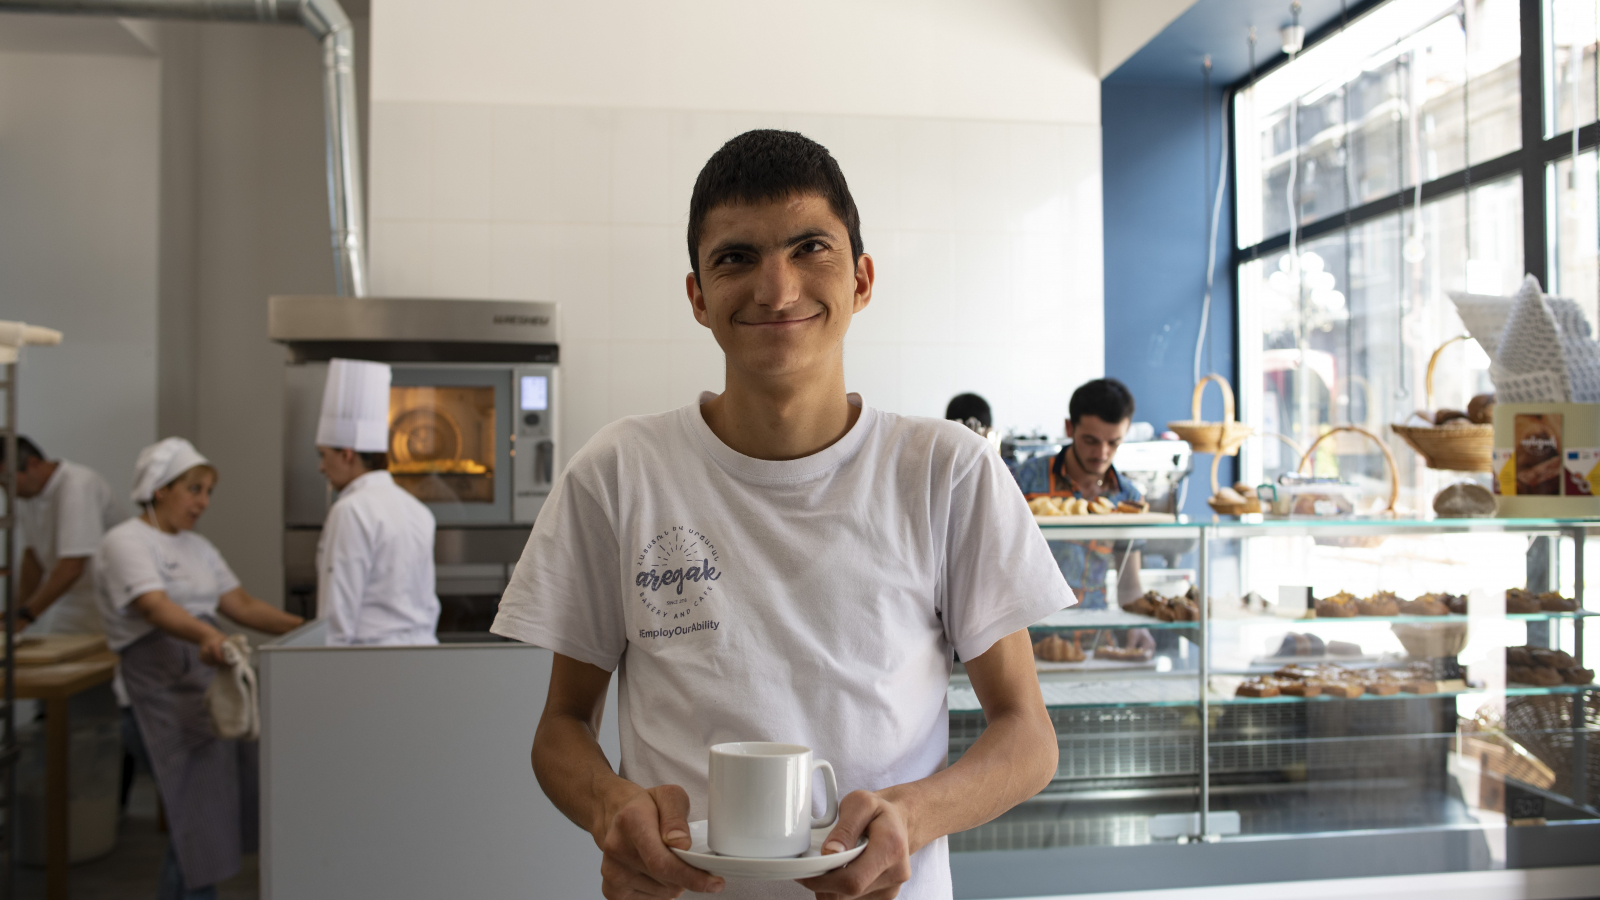 21-year-old Grisha Khachatryan works at the first inclusive bakery and café in Gyumri (Photo by Nazik Armenakian)